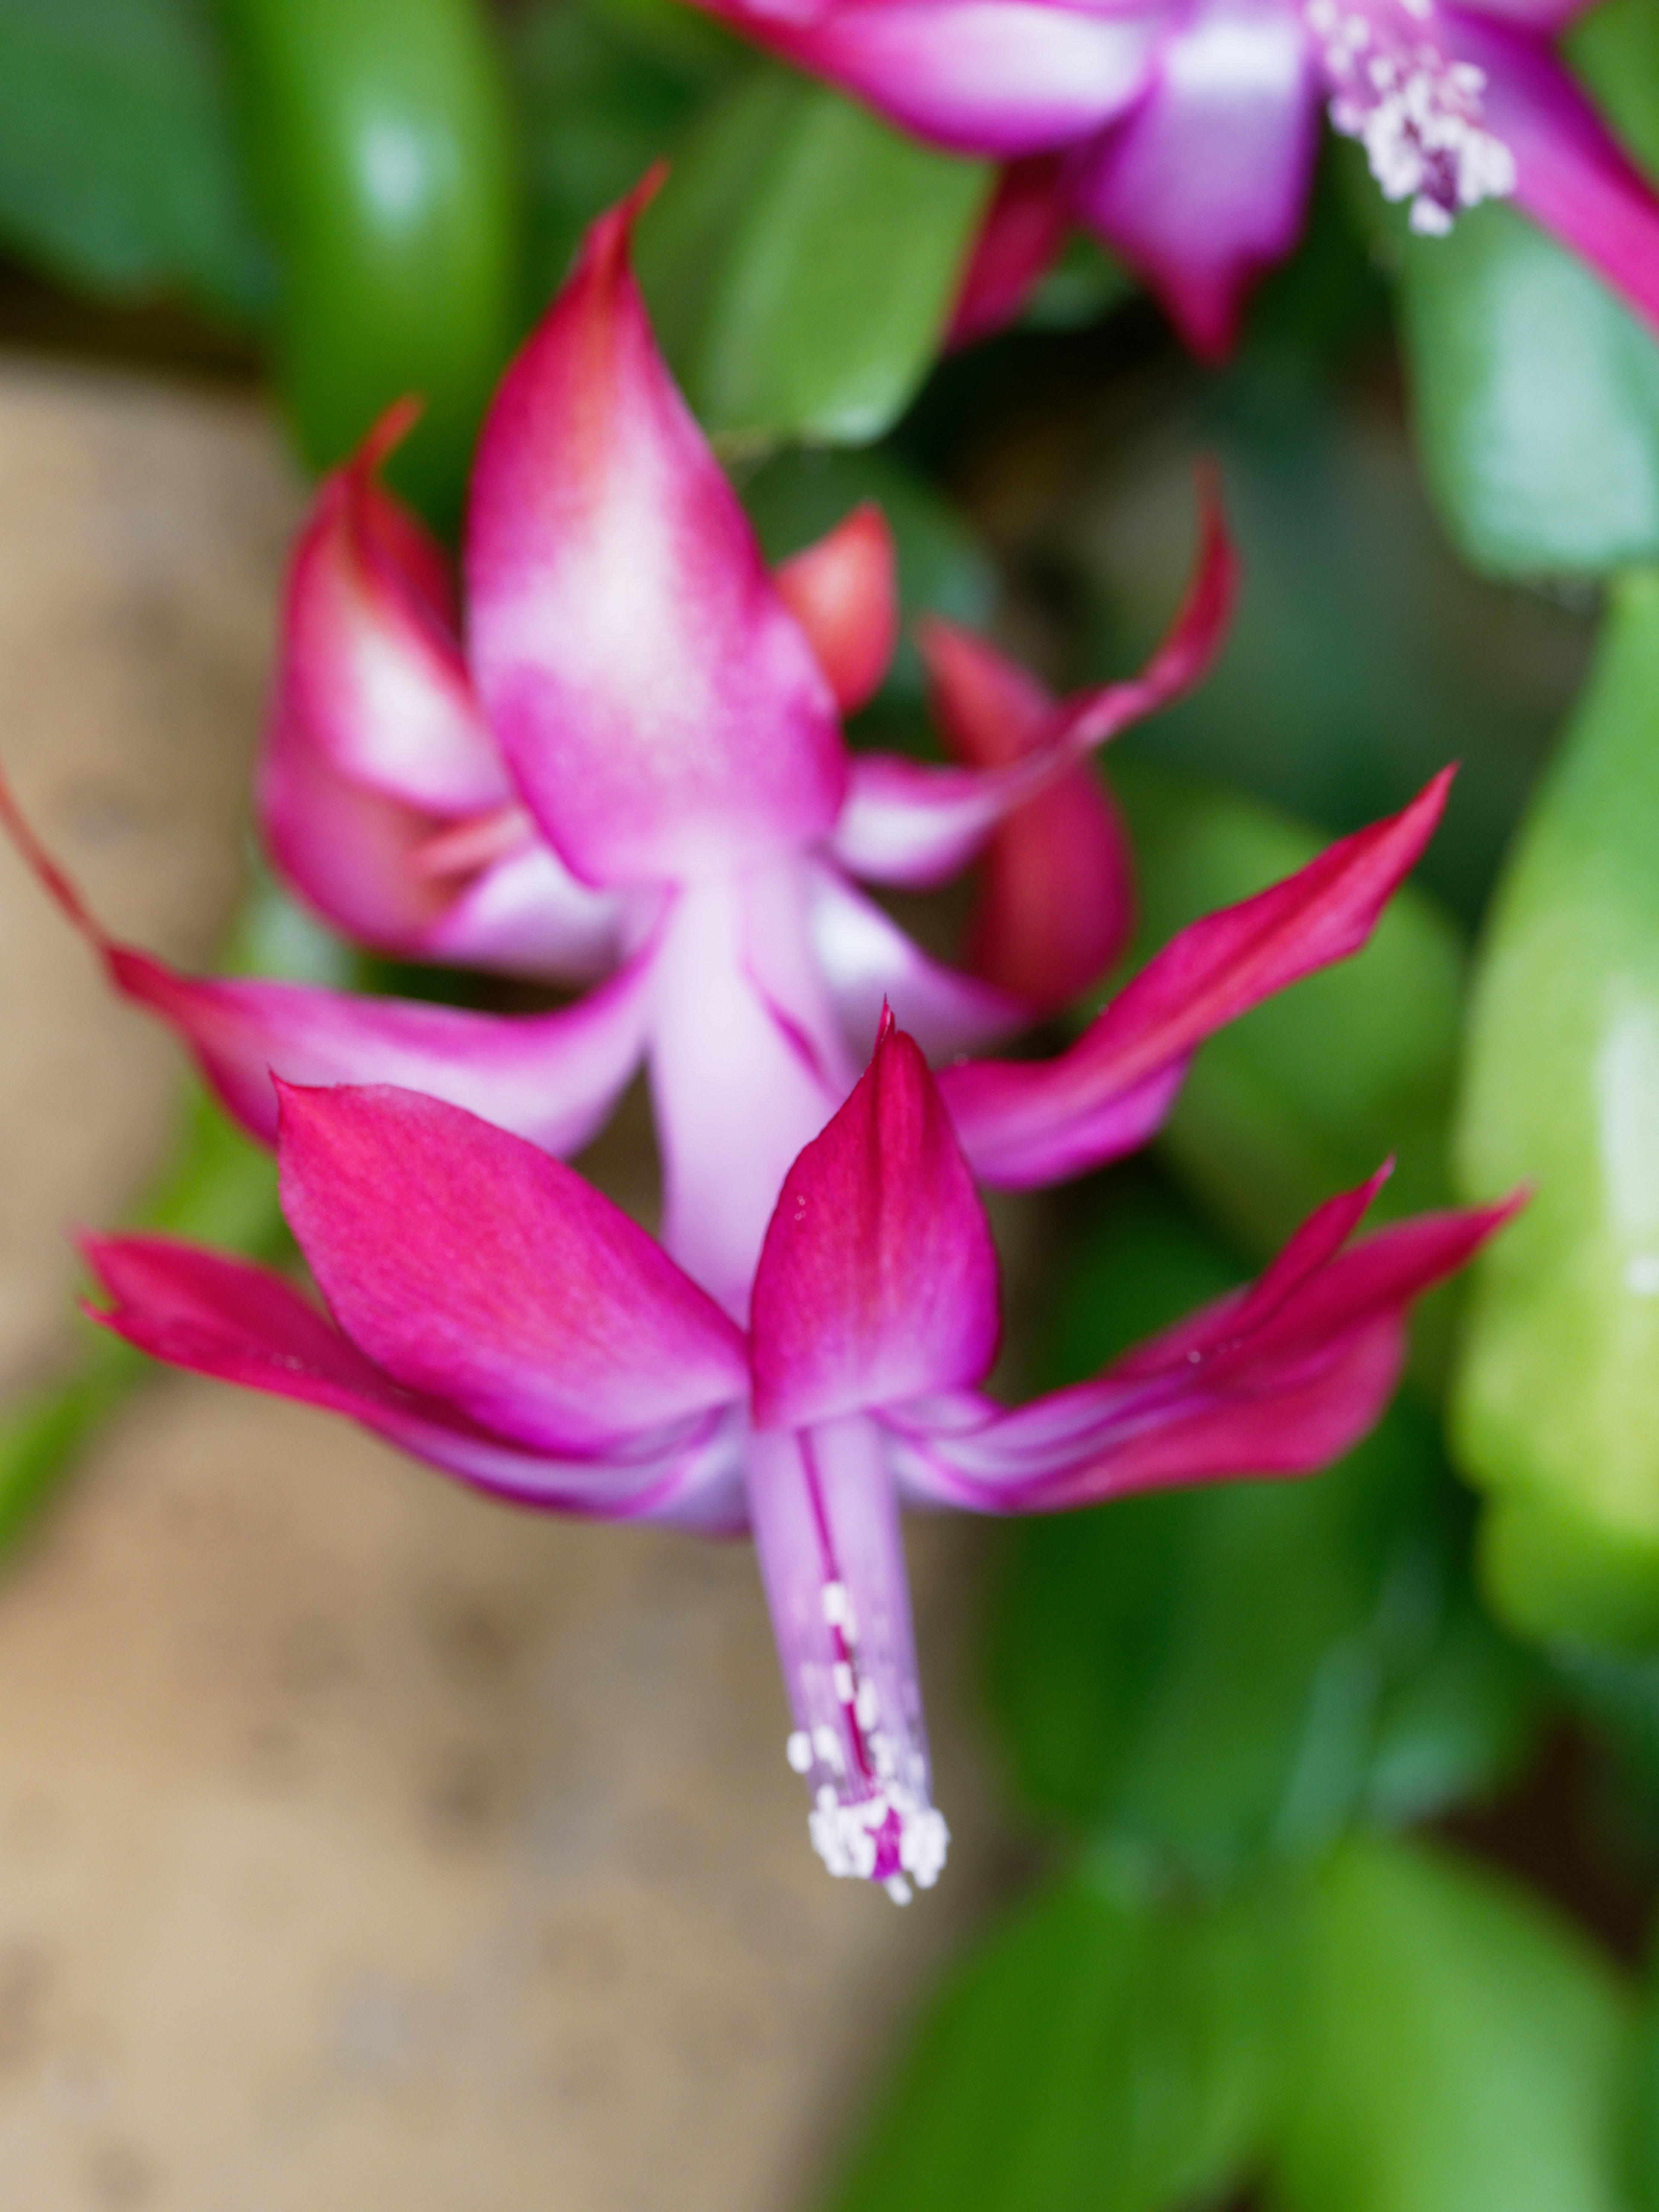 This should be Schlumbergera-1.jpeg.  Is it missing?